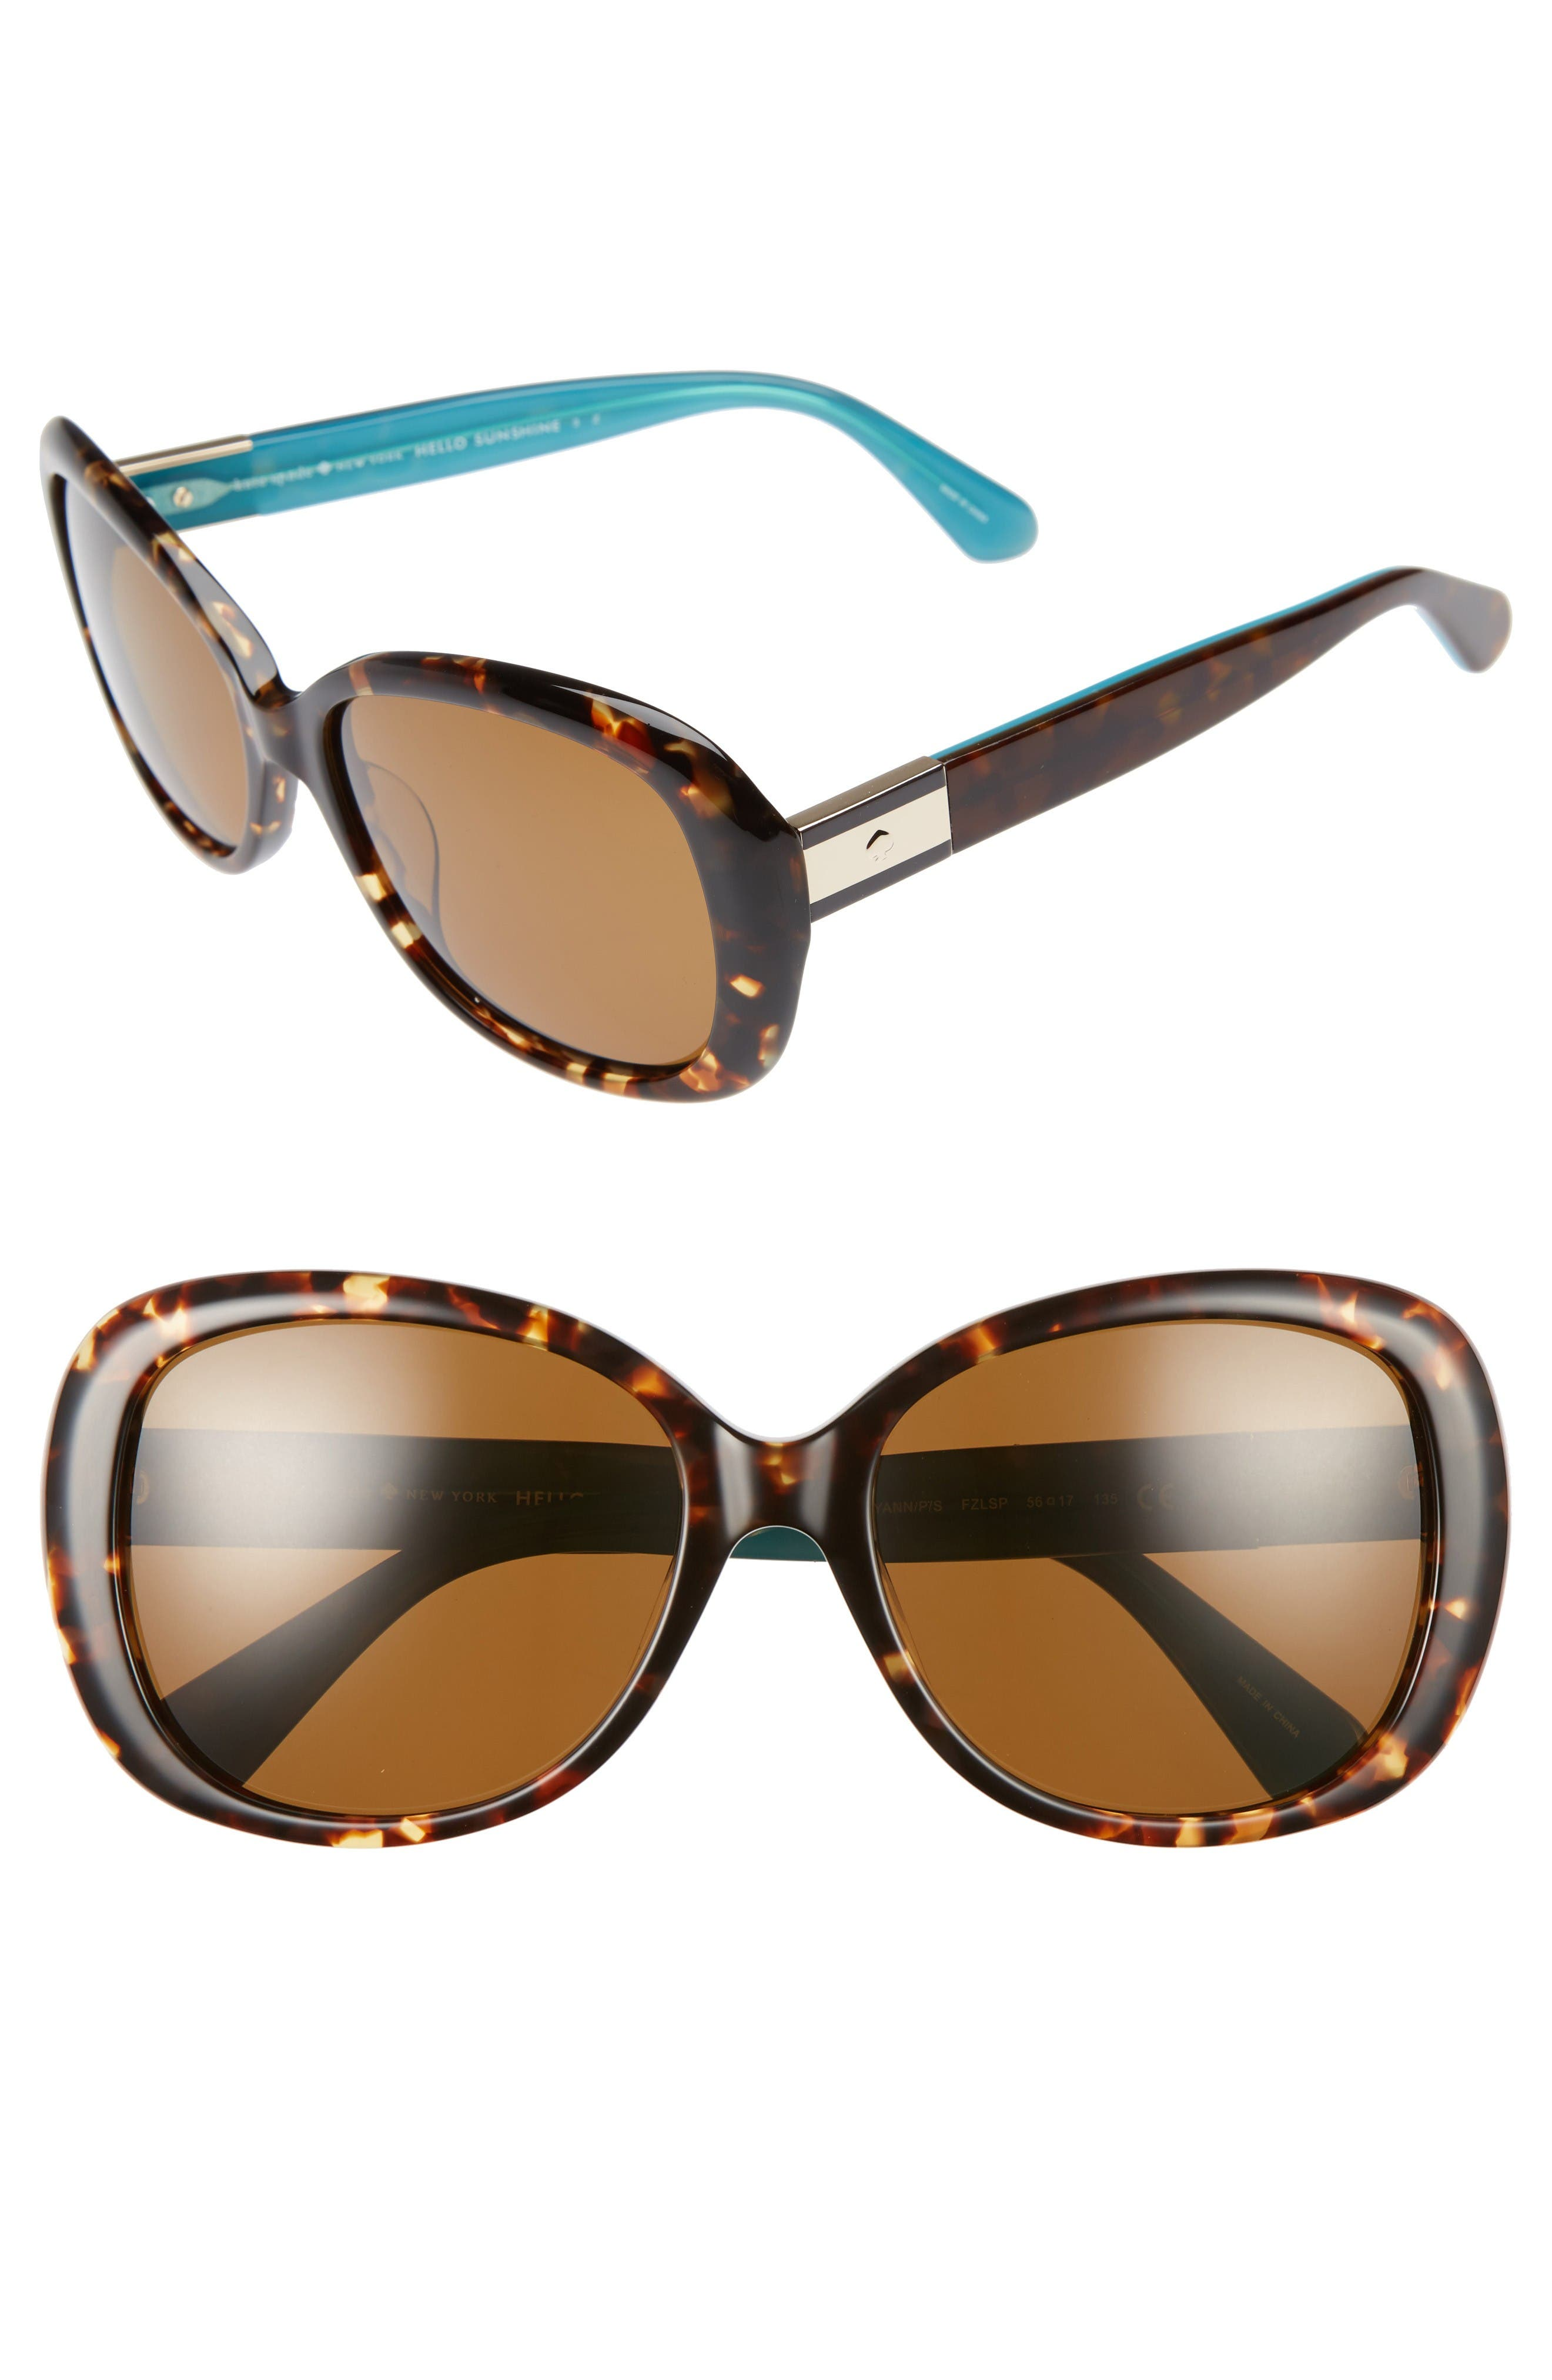 kate spade new york judyann 50mm Sunglasses